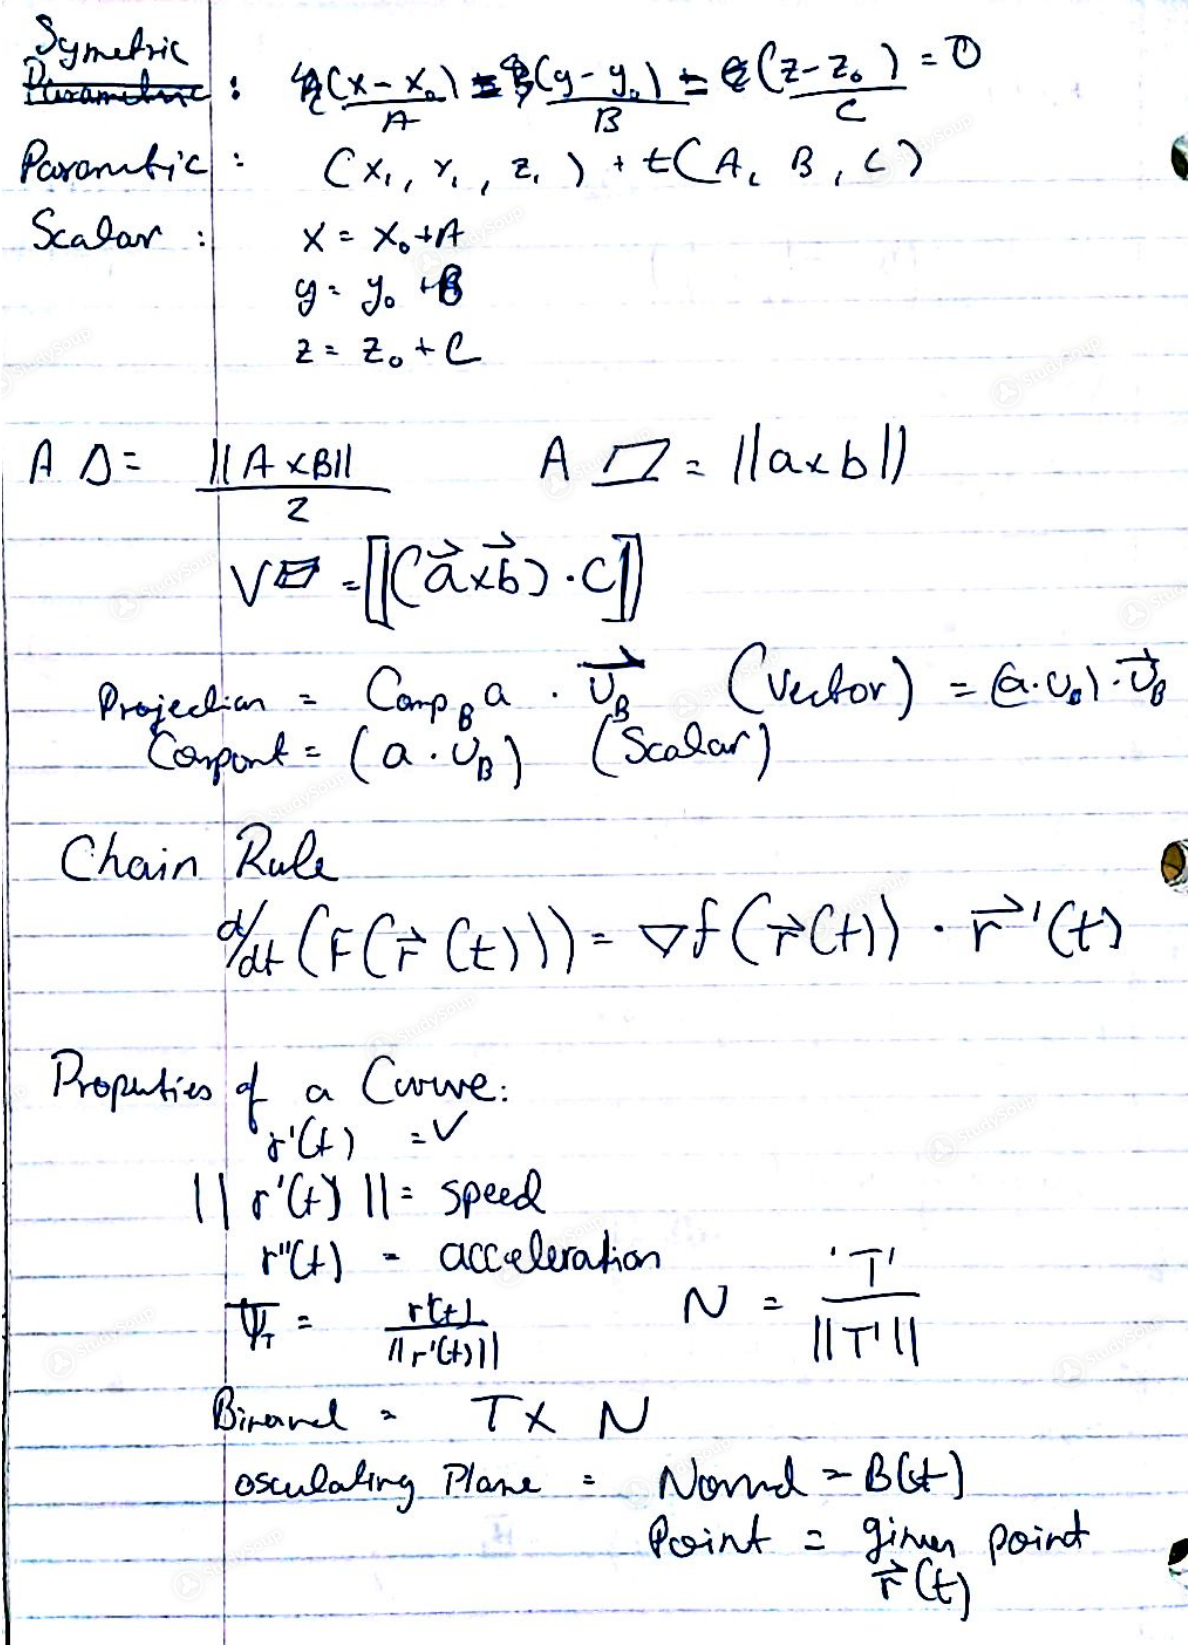 UH - MATH 2433 - Cumulative formula sheet- notes - Class